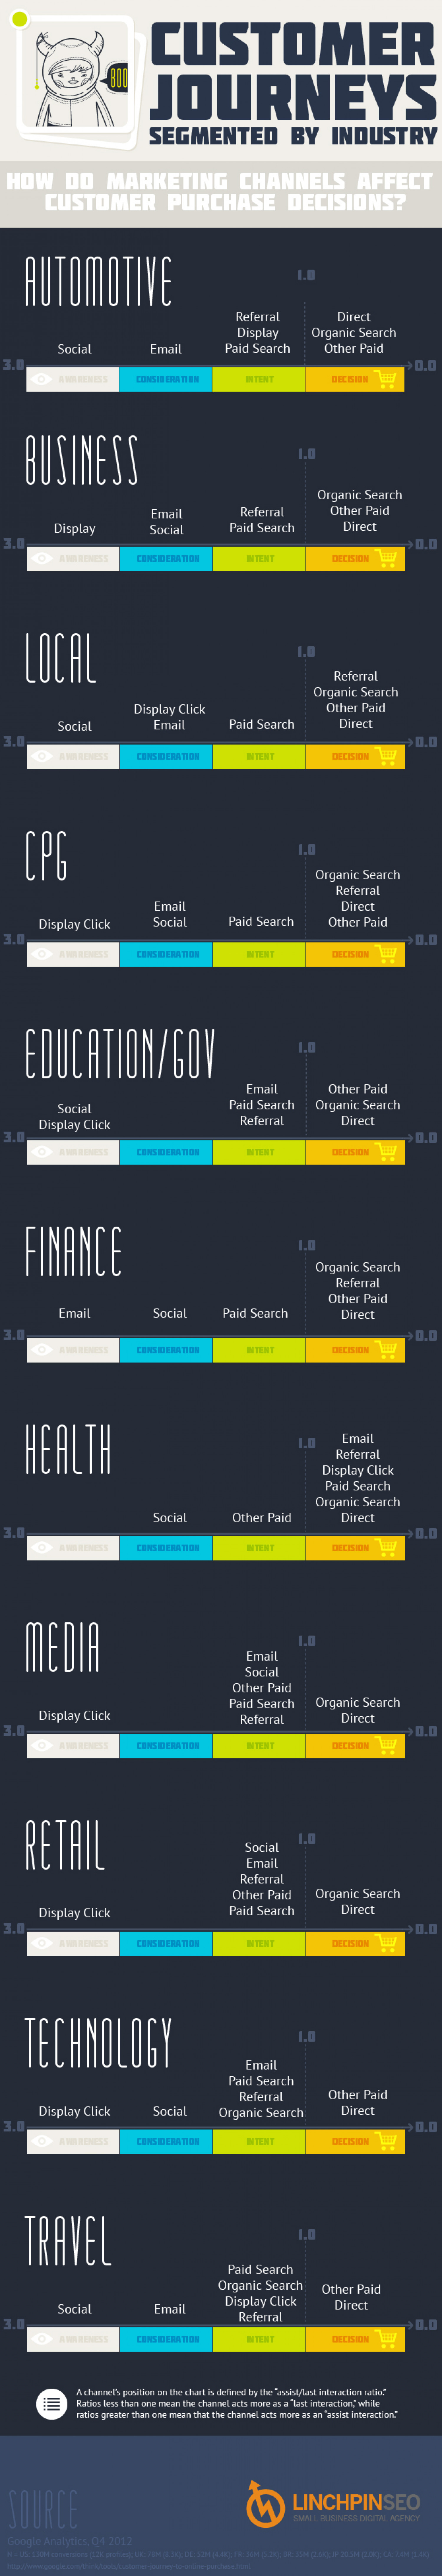 Customer Journeys By Marketing Channel and Business Type Infographic